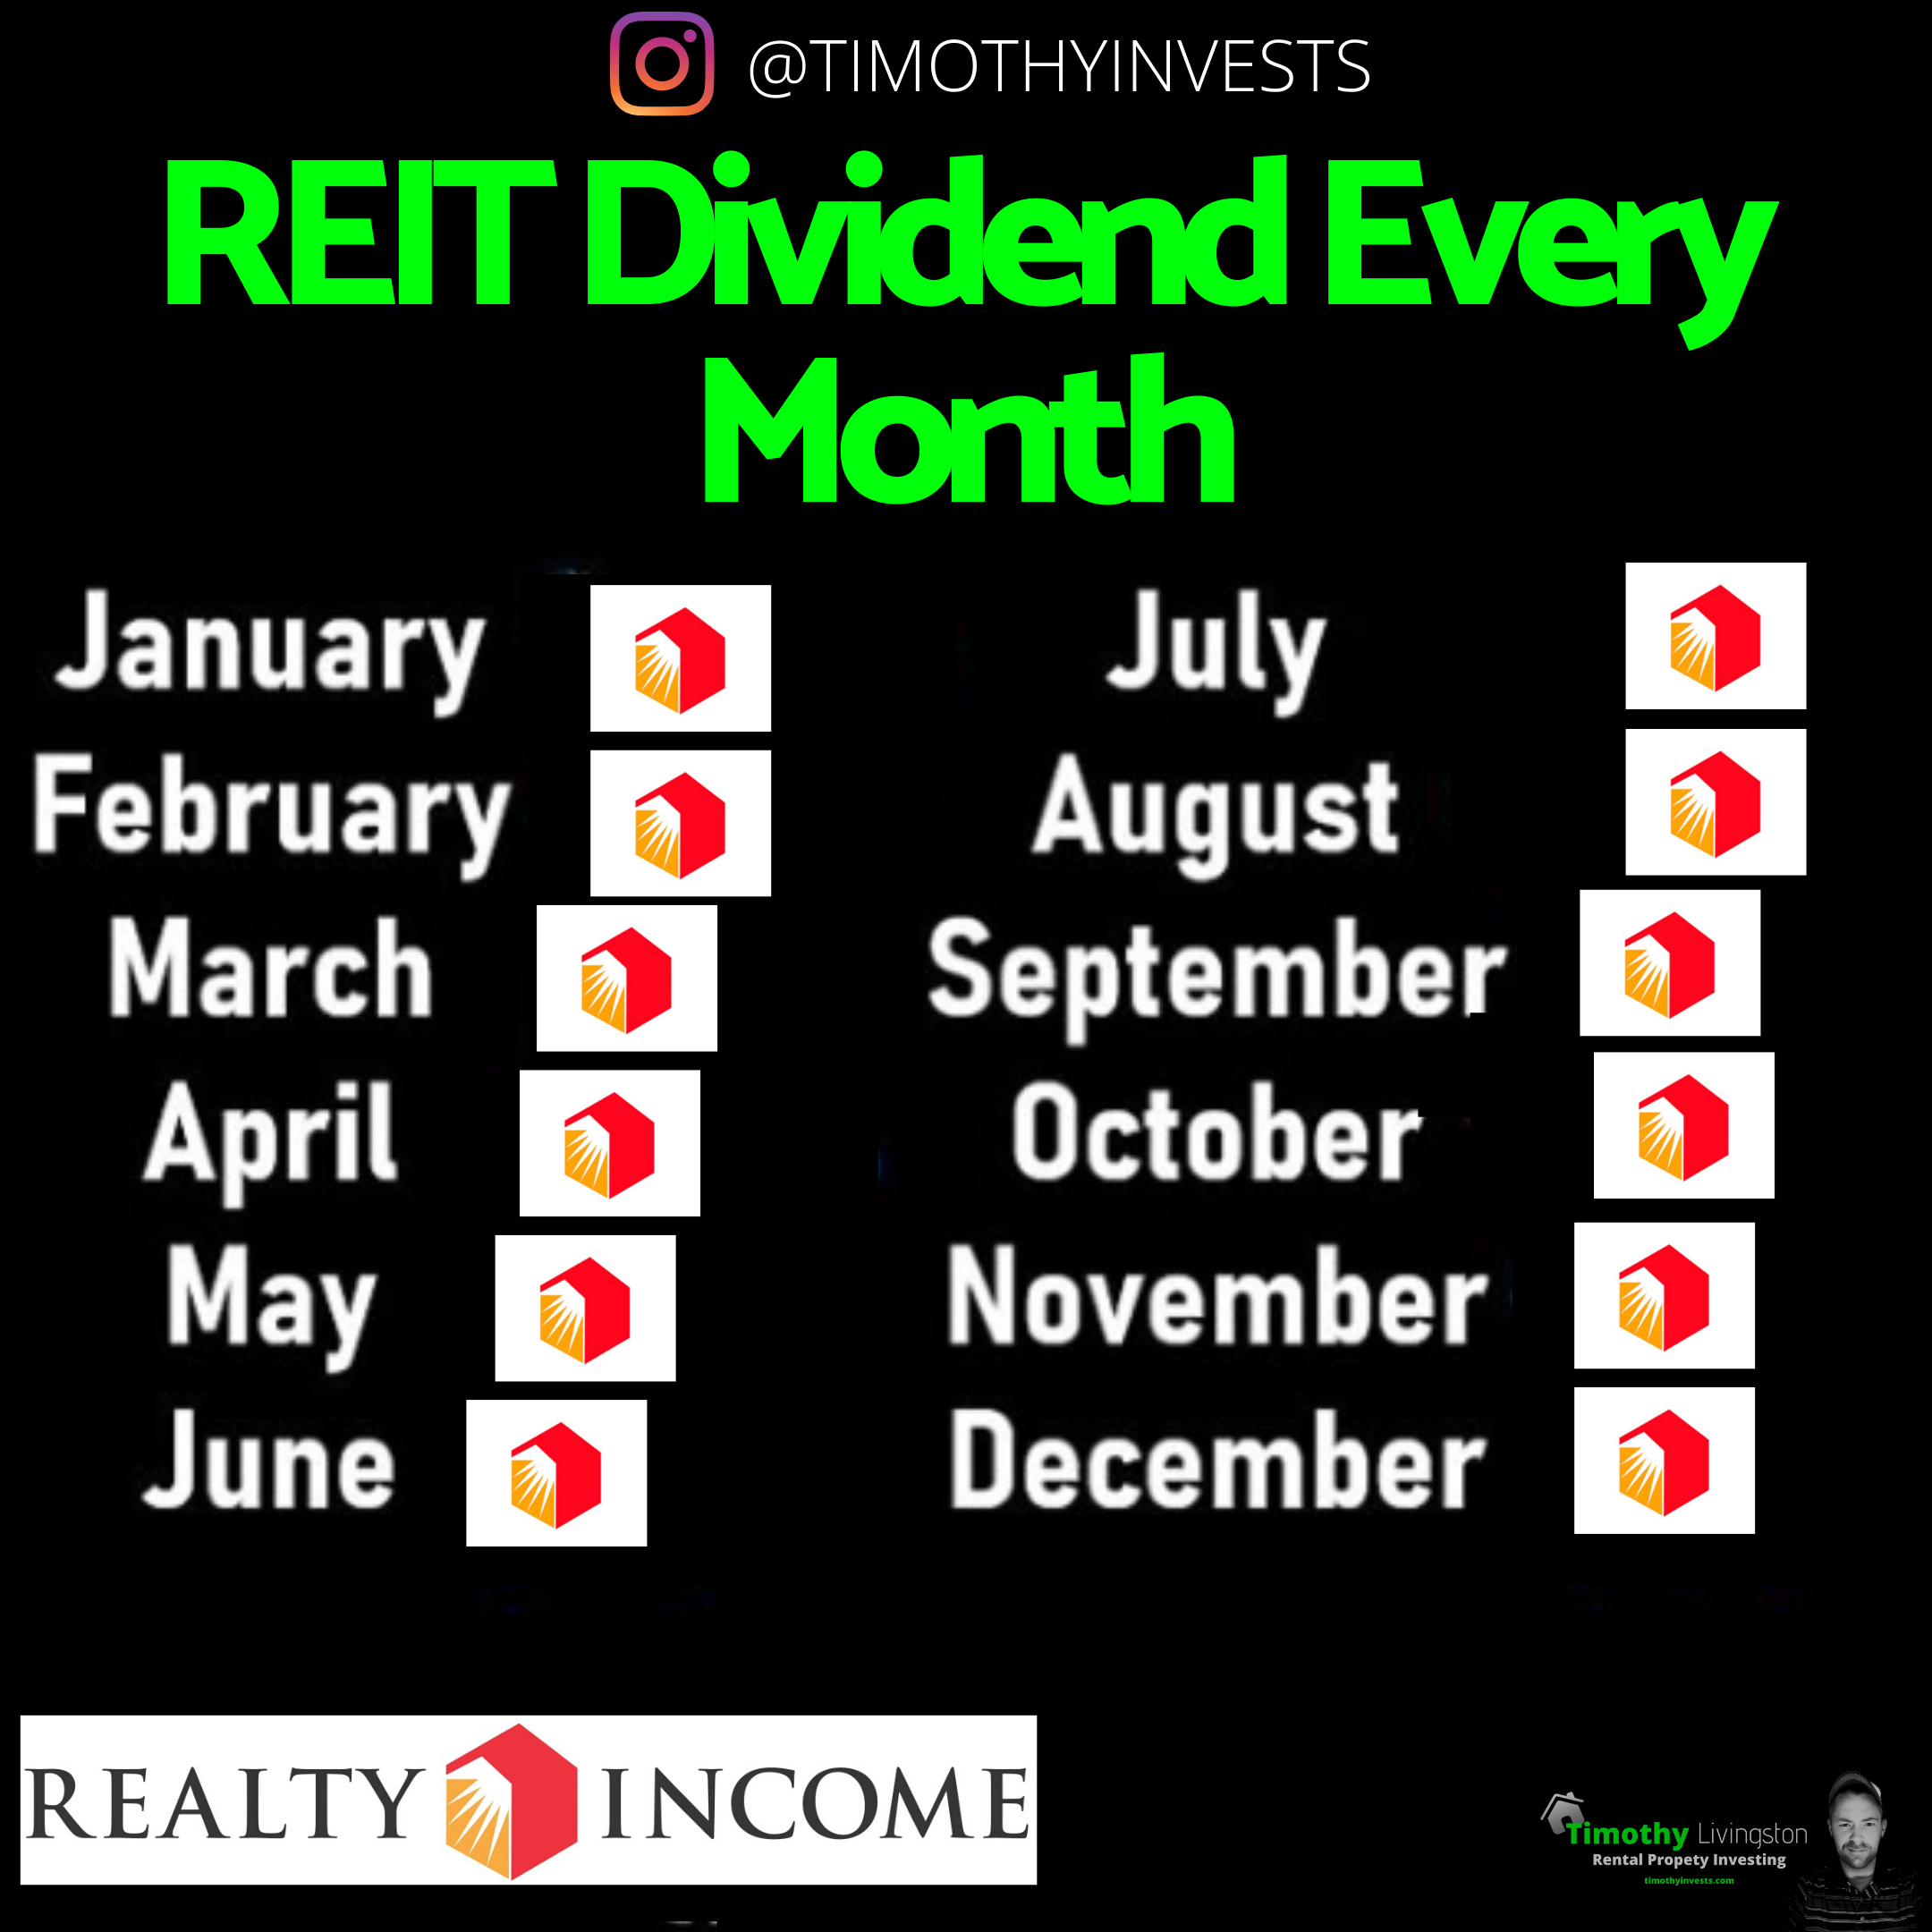 Do you receive cash dividends throughout the year? Holding shares of this Real Estate Investment Trust (REIT) would allow you to receive a dividend payout every month of the year 🔥 #investing #dividends #stockmarket #passiveincome #cashflow #money #moneytips #millionairemindset #millionaire #stock #realestate #realestateinvesting